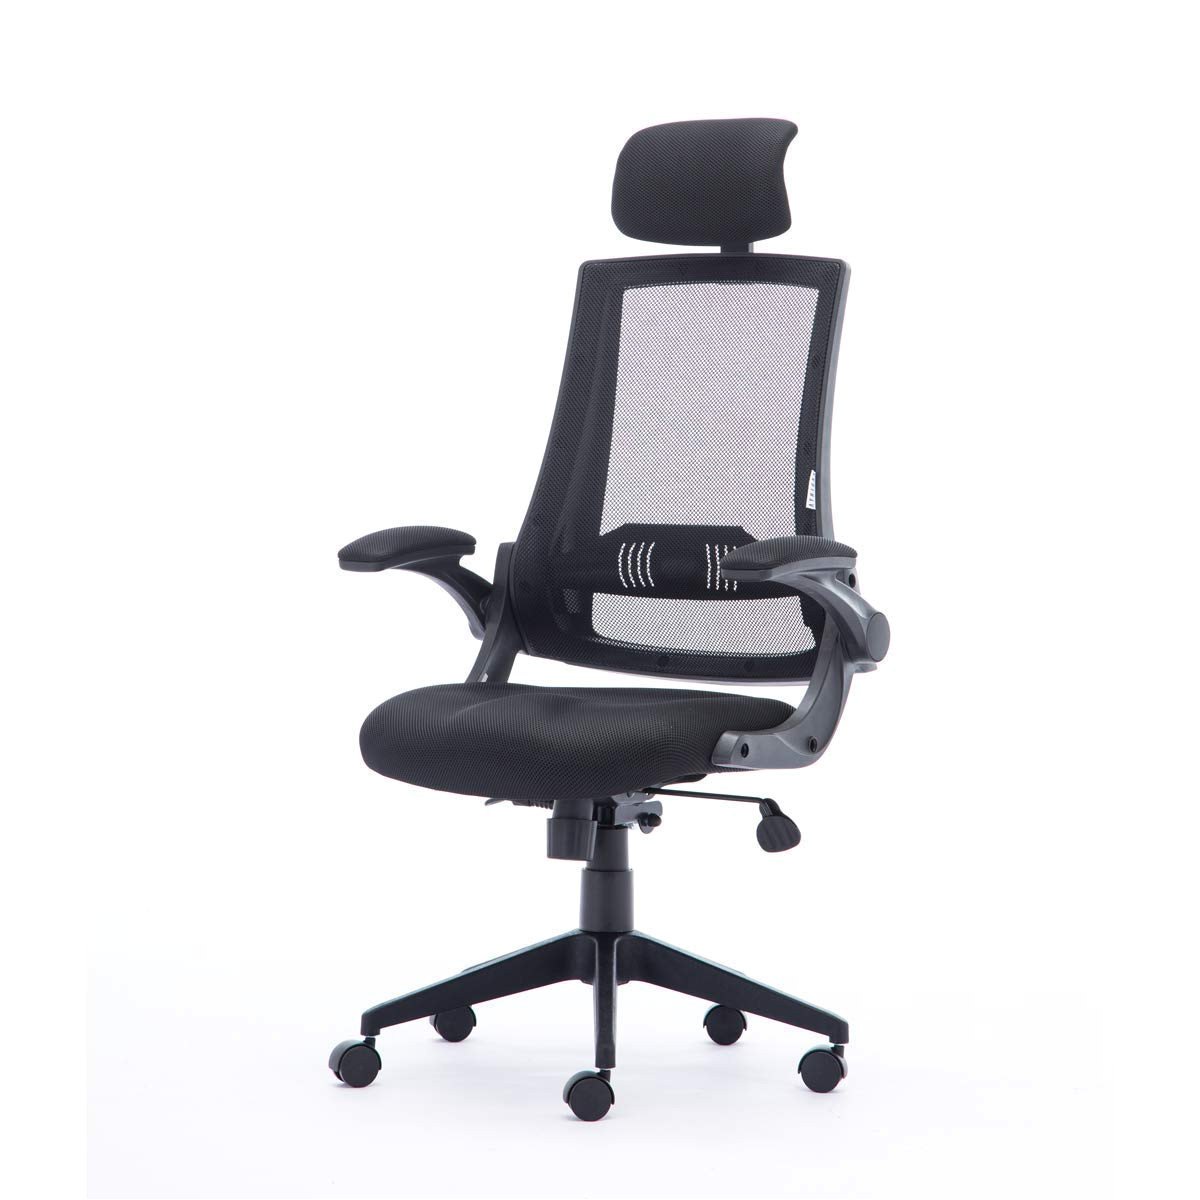 amazon com worpson high back ergonomic mesh office chair mesh seat computer desk chair with adjustable headrest flip up armrests and lumbar support